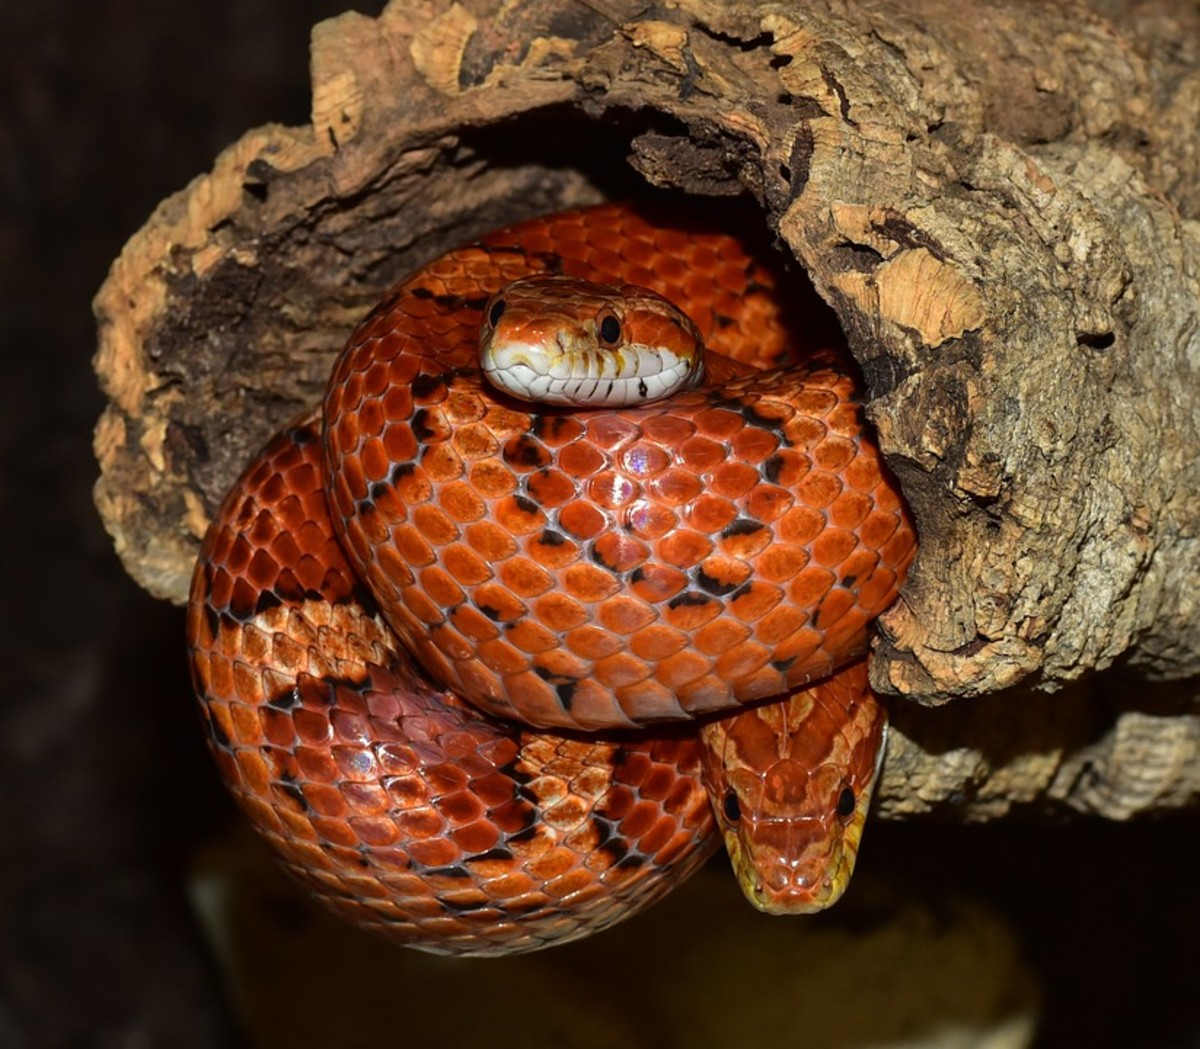 Corn snakes come in all sorts of colors and patterns (called morphs).